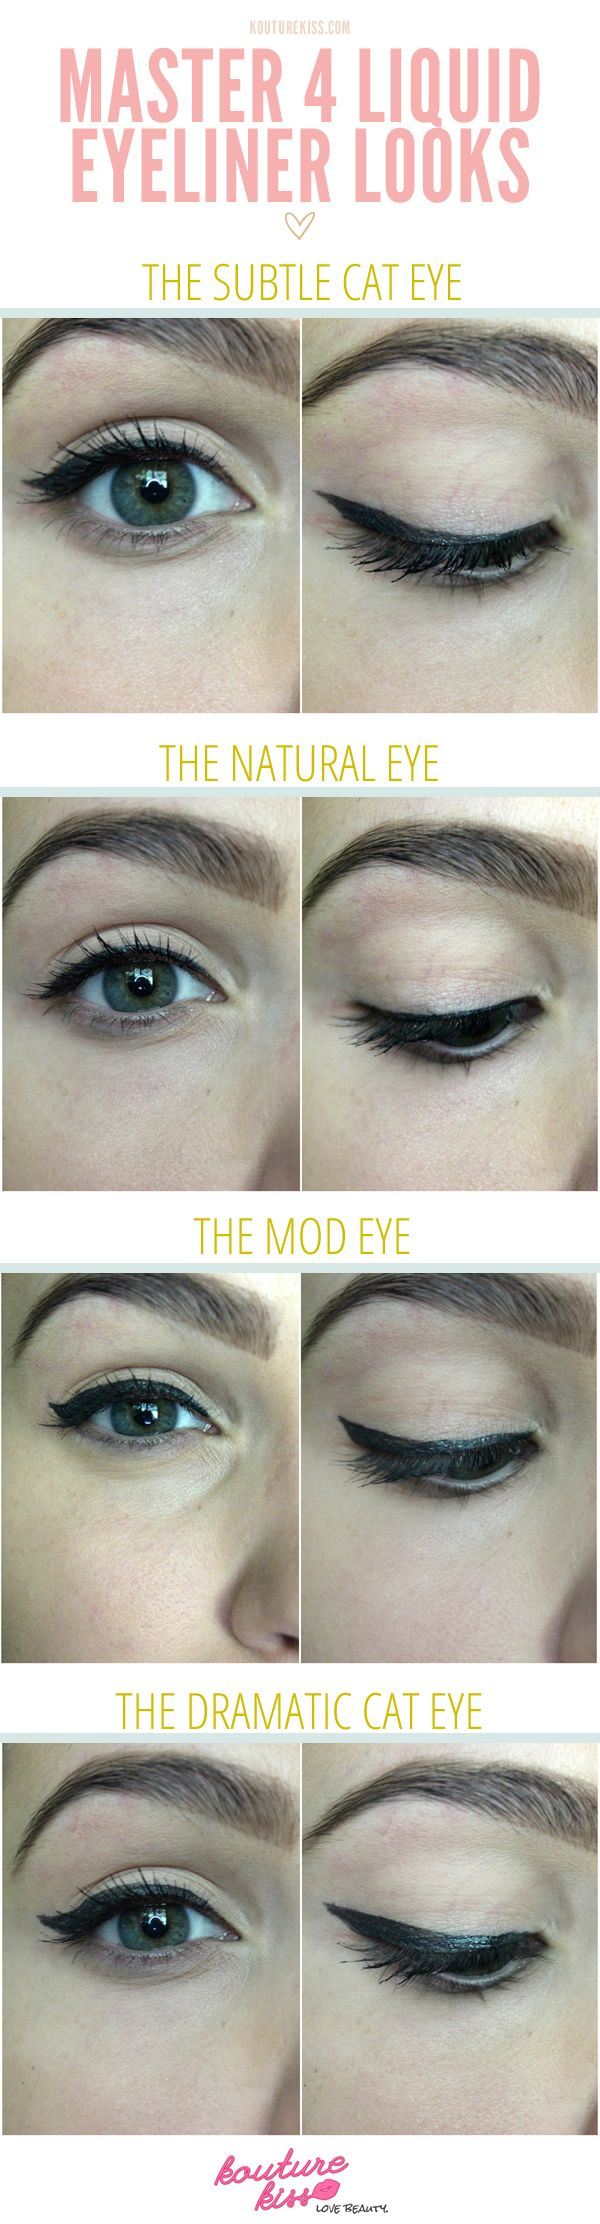 Master 4 Liquid Eyeliner Looks - Kouturekiss - Your One Stop Everything Beauty Spot - kouturekiss.com